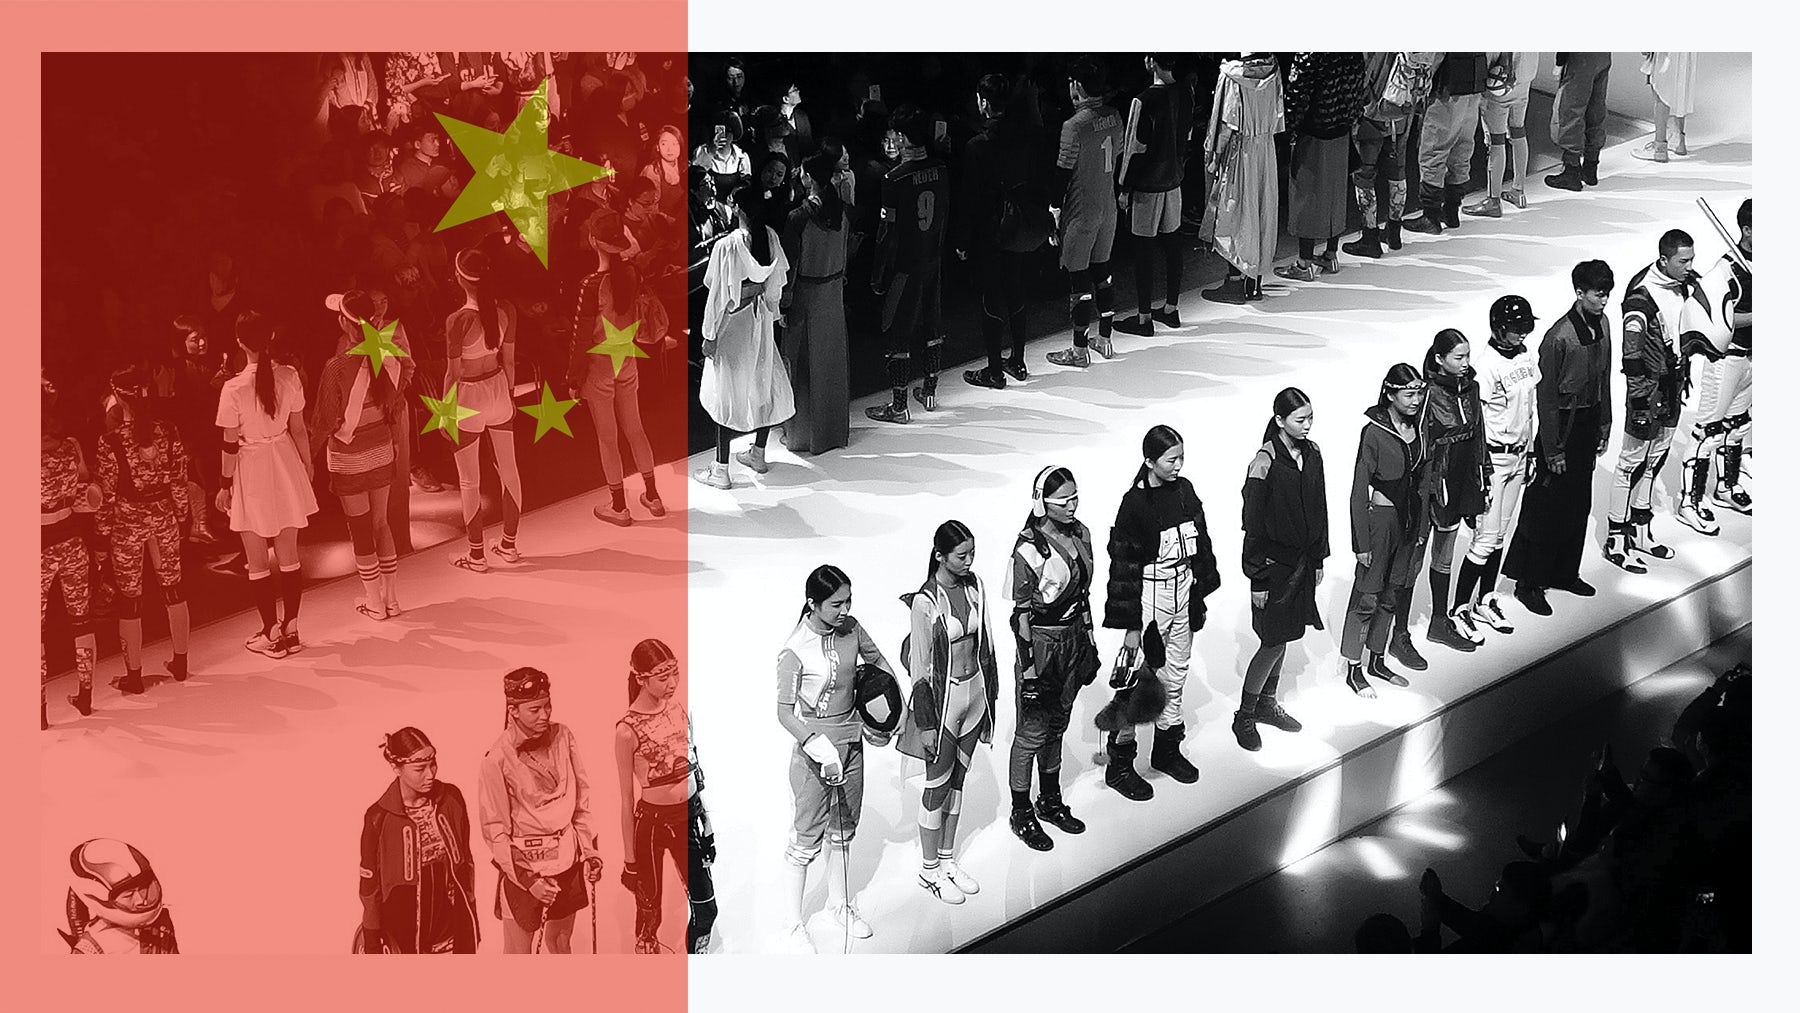 Top Fashion Schools in China: Pushing Forward Despite Philosophical Divide